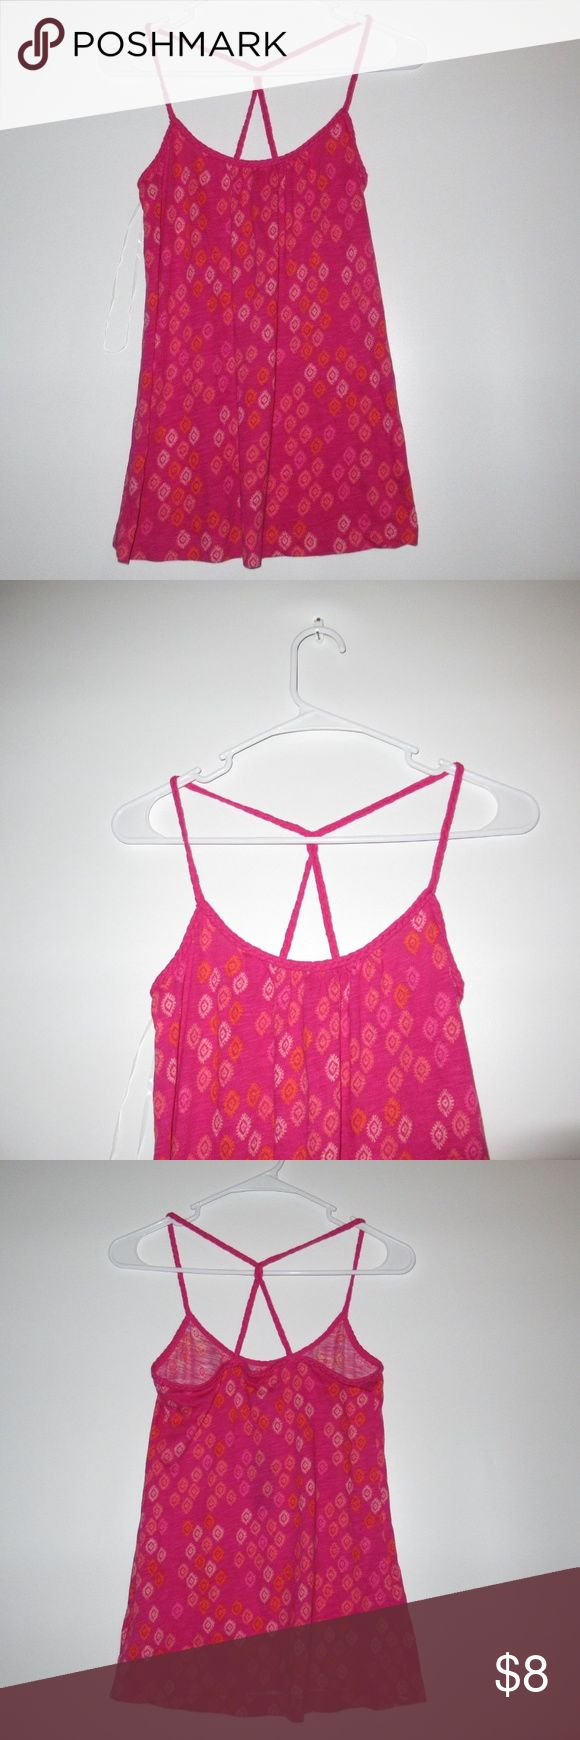 OLD NAVY Women's Top Cami Pink Aztec Braided OLD NAVY Women's Top Cami Pink Aztec Braided Summer Spaghetti Strap Sz XS/ S/ Old Navy Tops Tank Tops